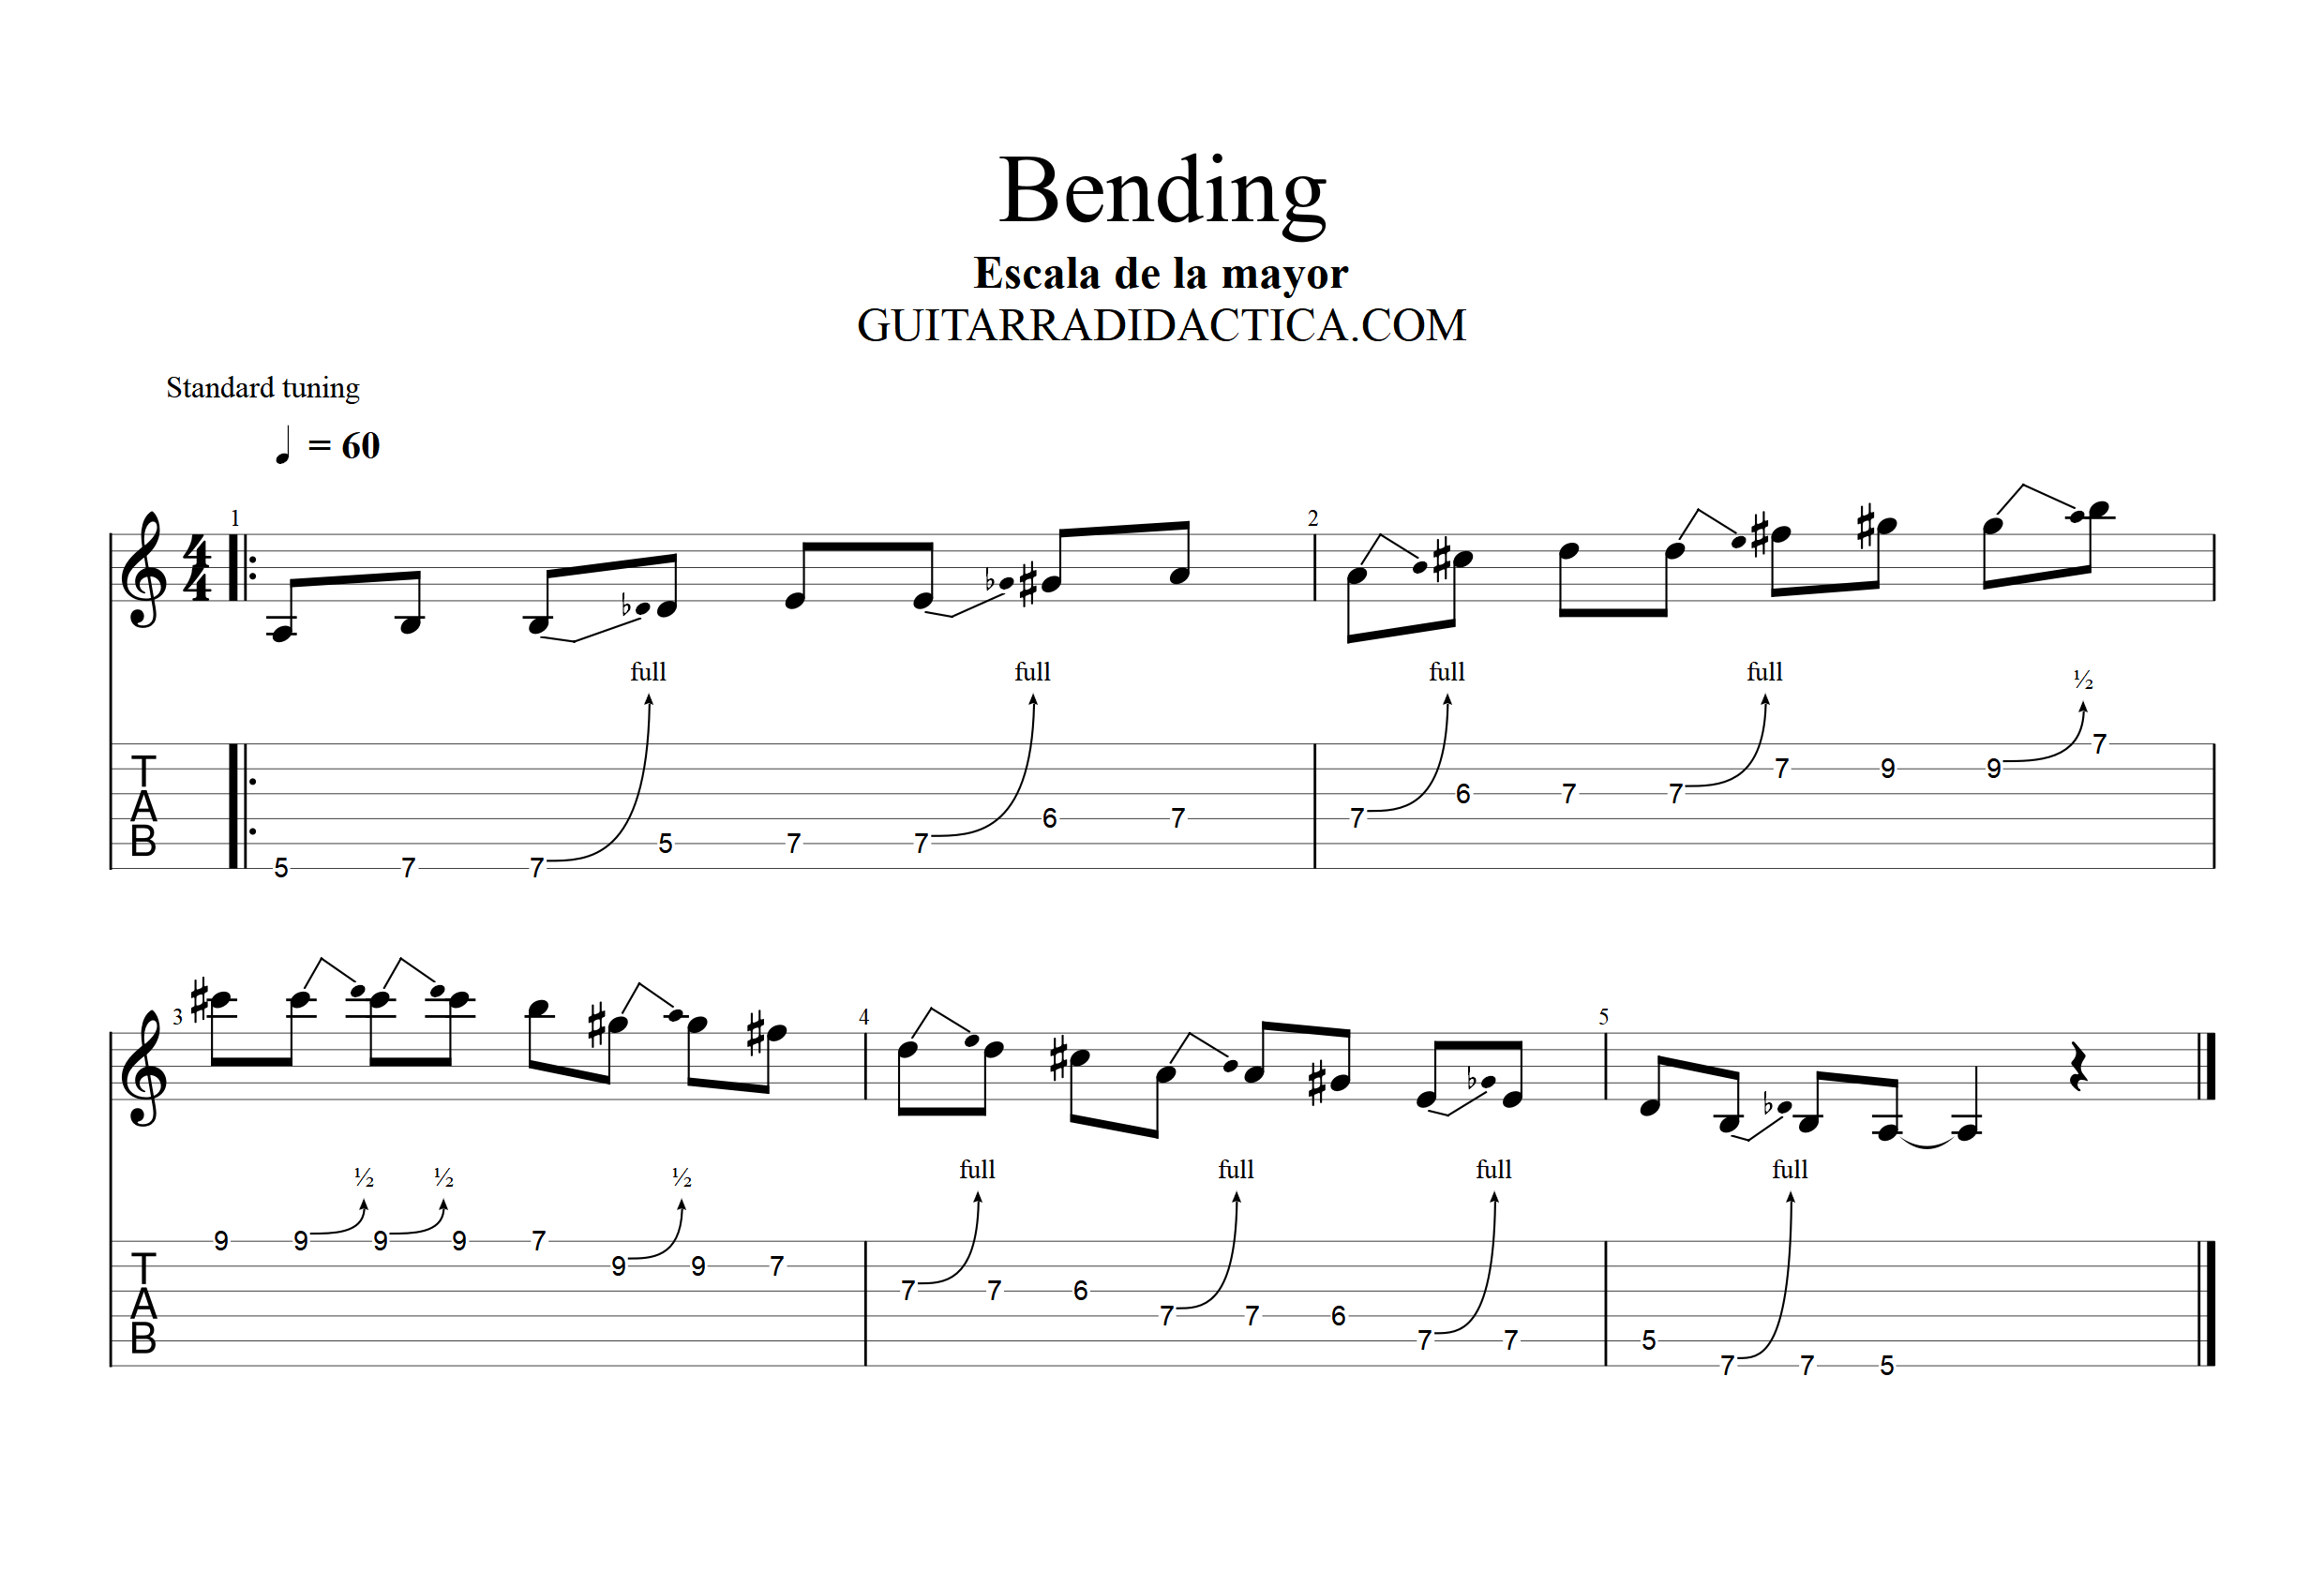 Bending guitarra